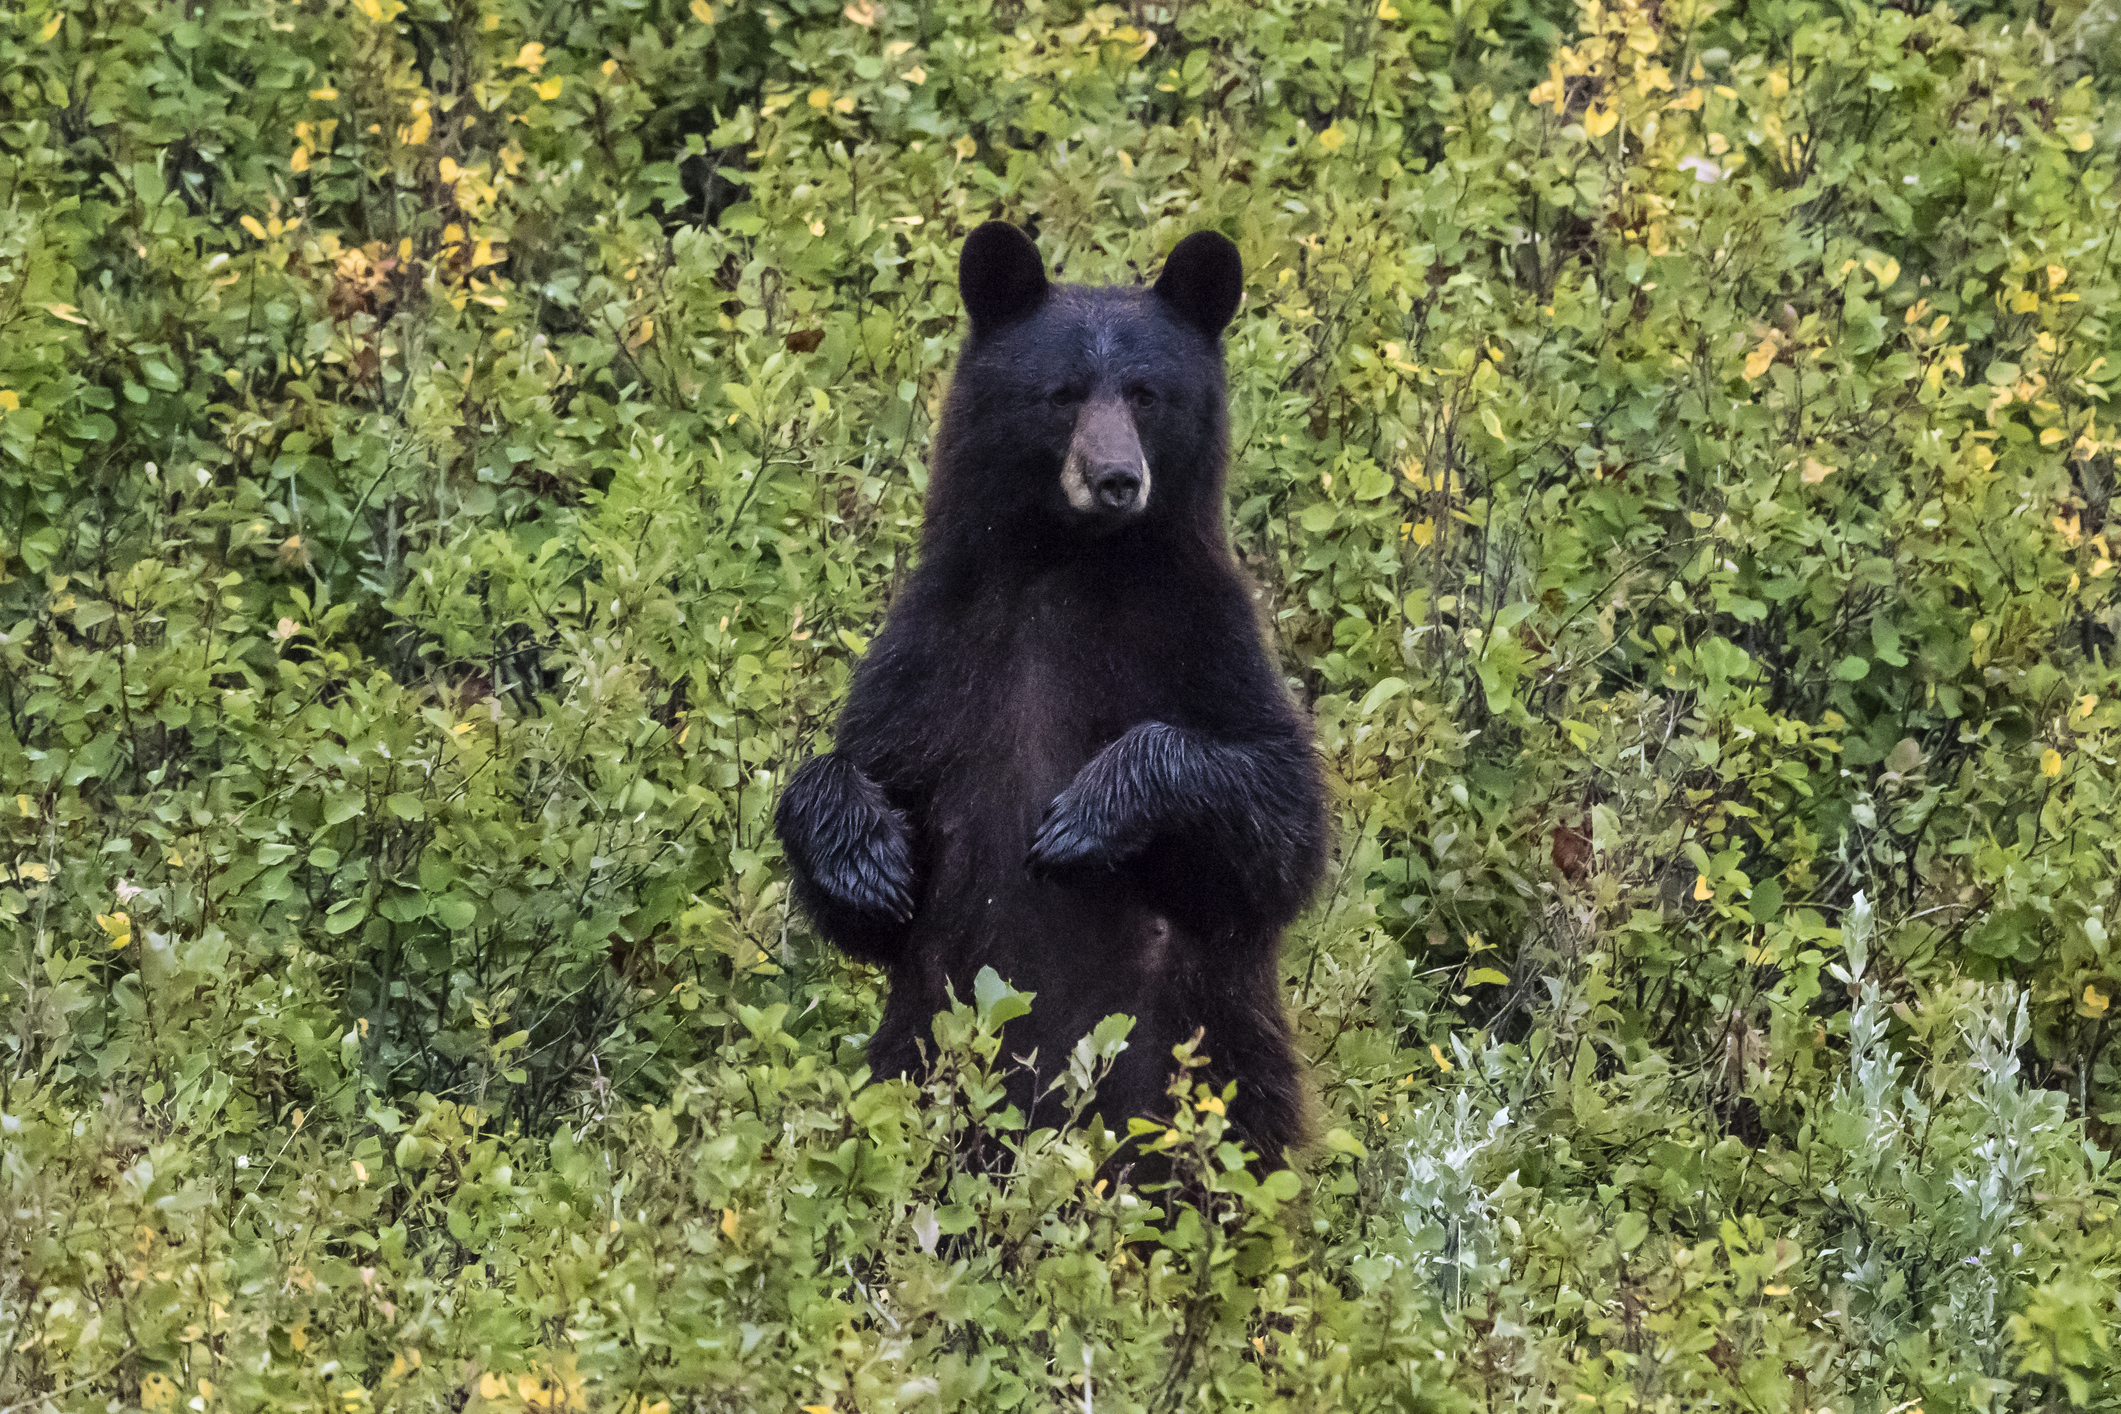 Stock image of black bear. (Getty Images)